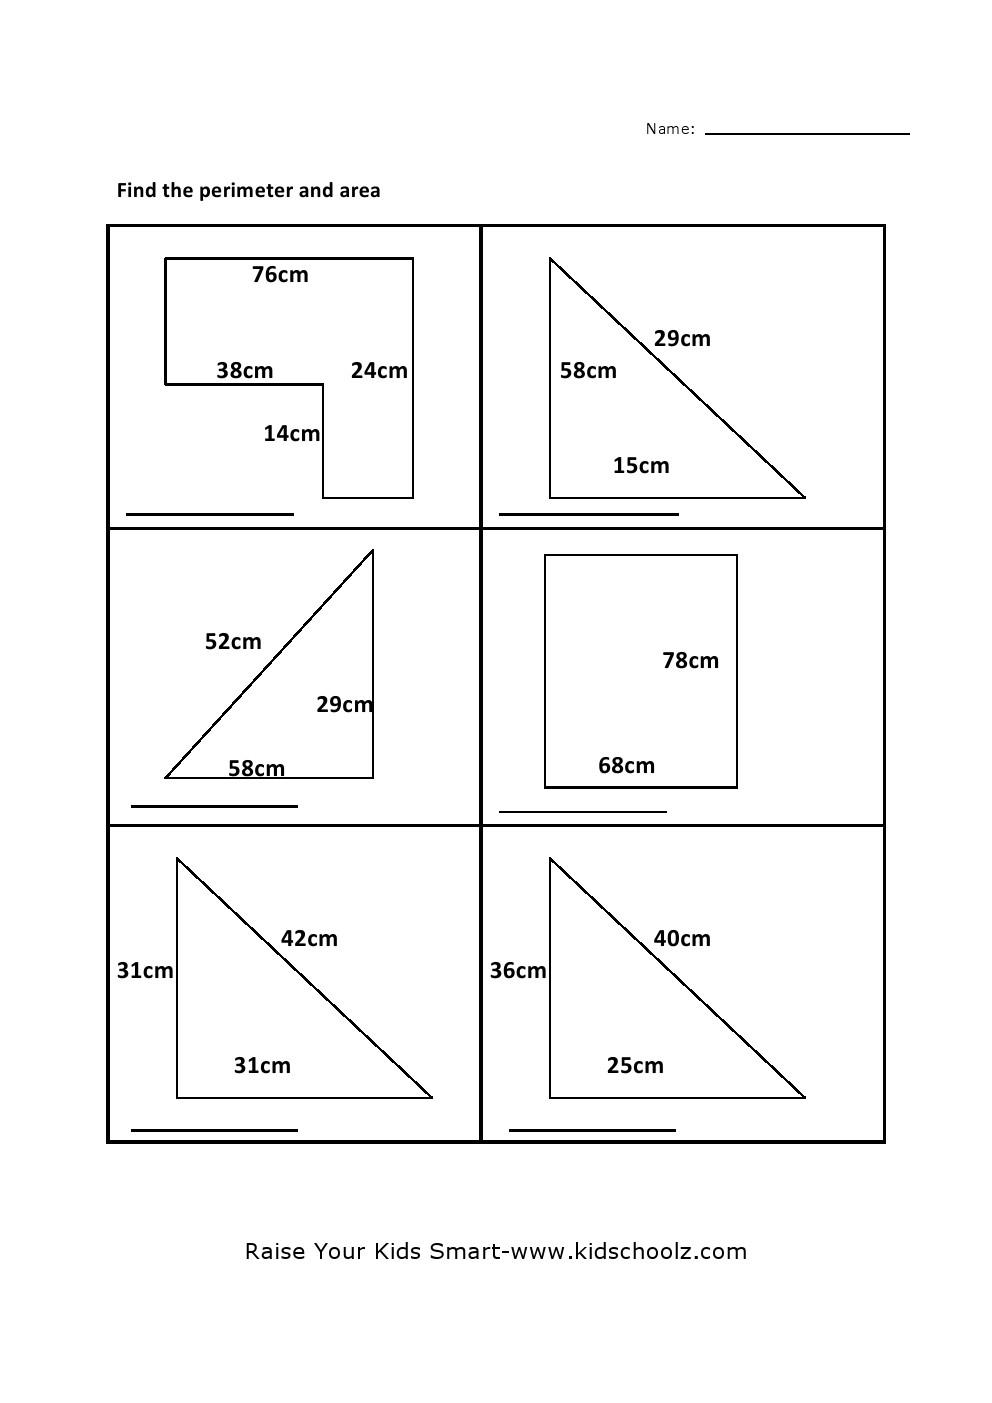 Grade 5 Perimeter Area Worksheet 5 – Maths Perimeter and Area Worksheets